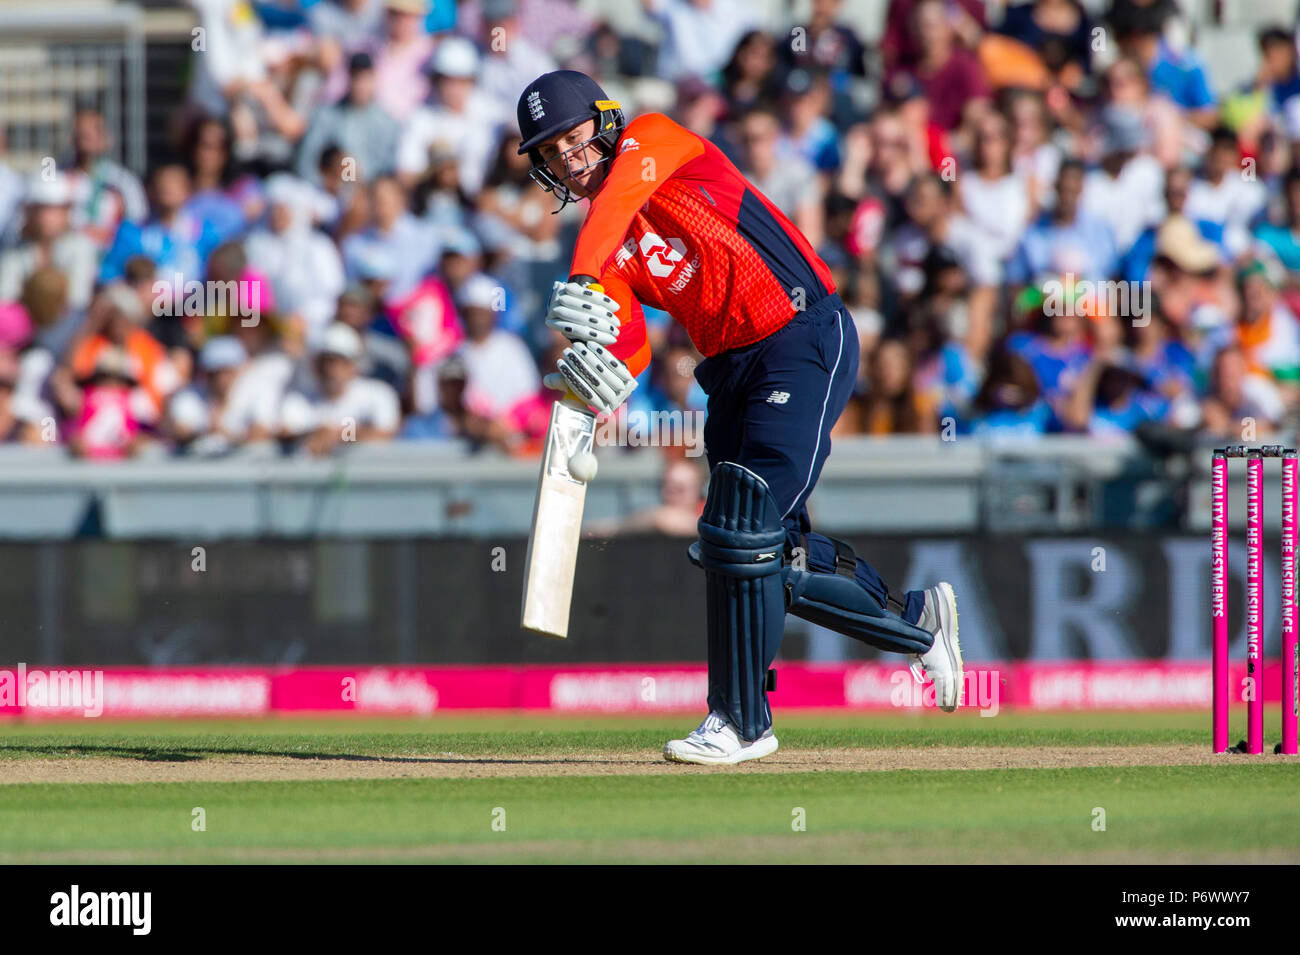 Manchester, UK. 3rd July 2018. Jason Roy of England in action during the 1st International T20 match between England and India at Old Trafford, Manchester, England on 3 July 2018. Photo by Brandon Griffiths. Credit: Brandon Griffiths/Alamy Live News - Stock Image